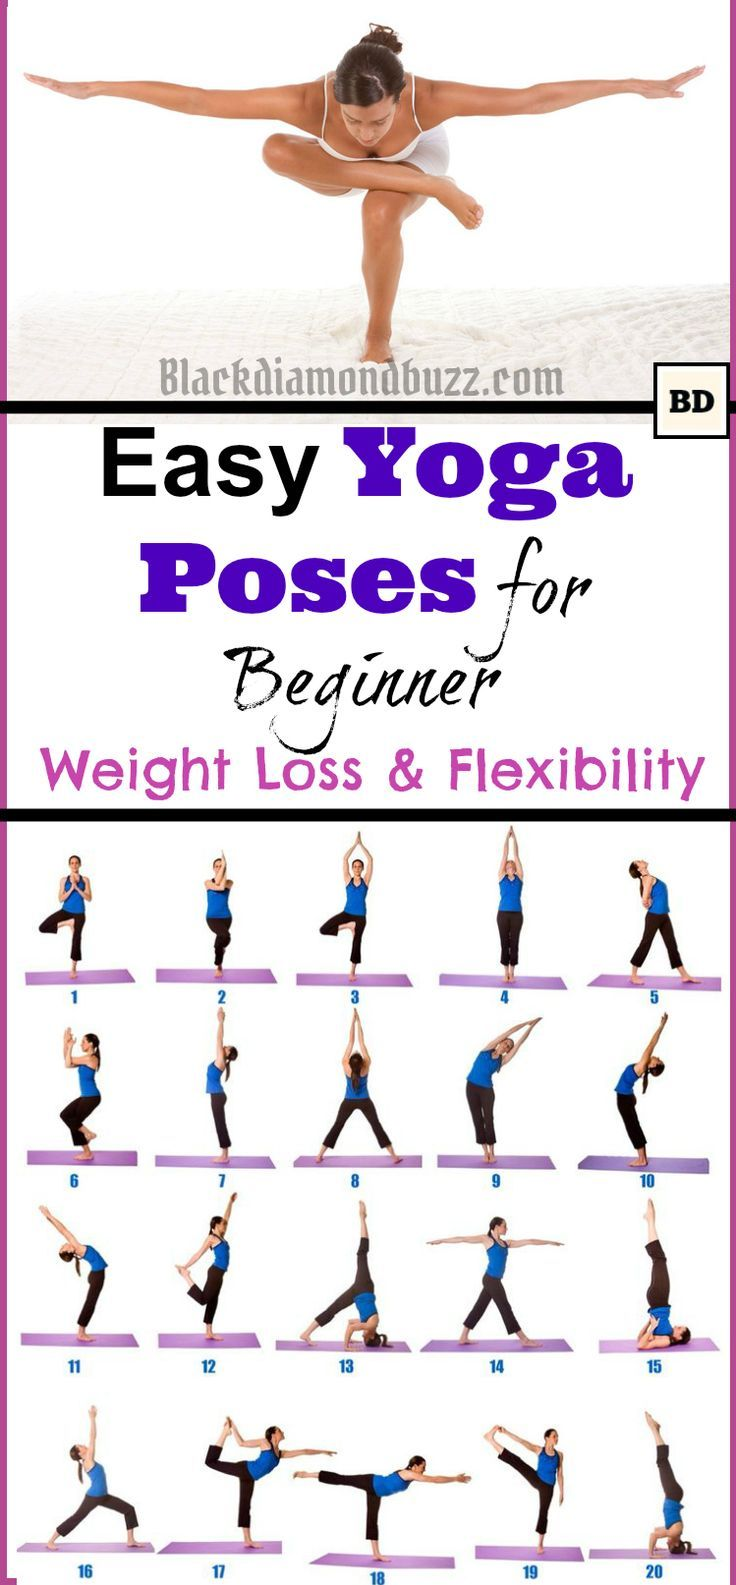 38 Easy Best Yoga Poses for Beginners and Back Stretches at Home